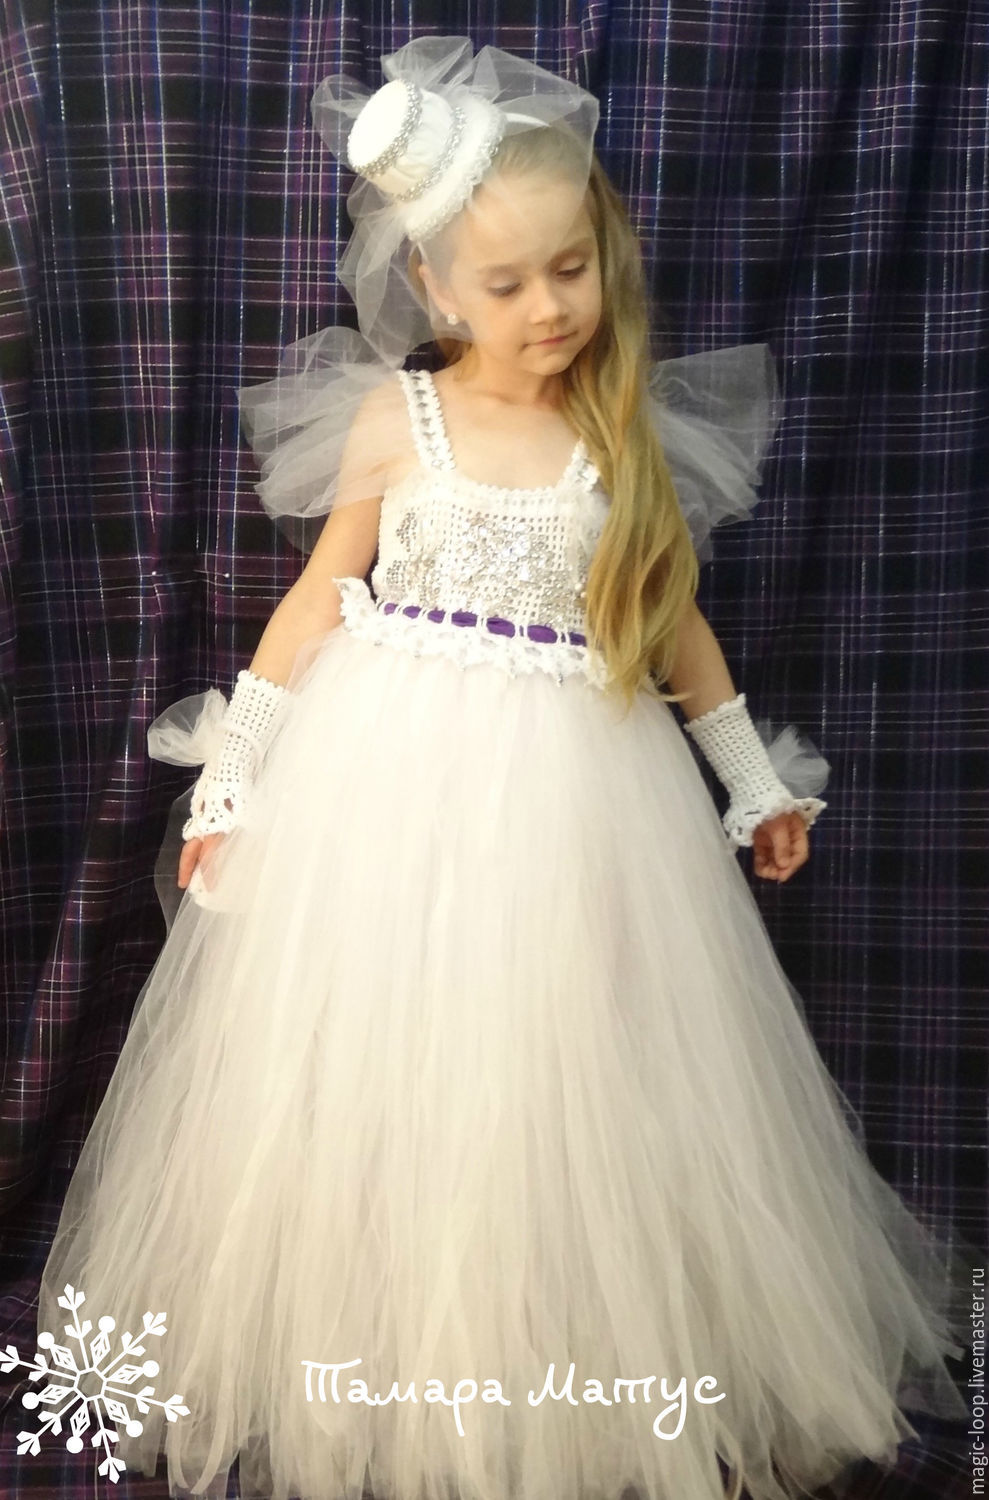 Ballroom dress for the little lady in \